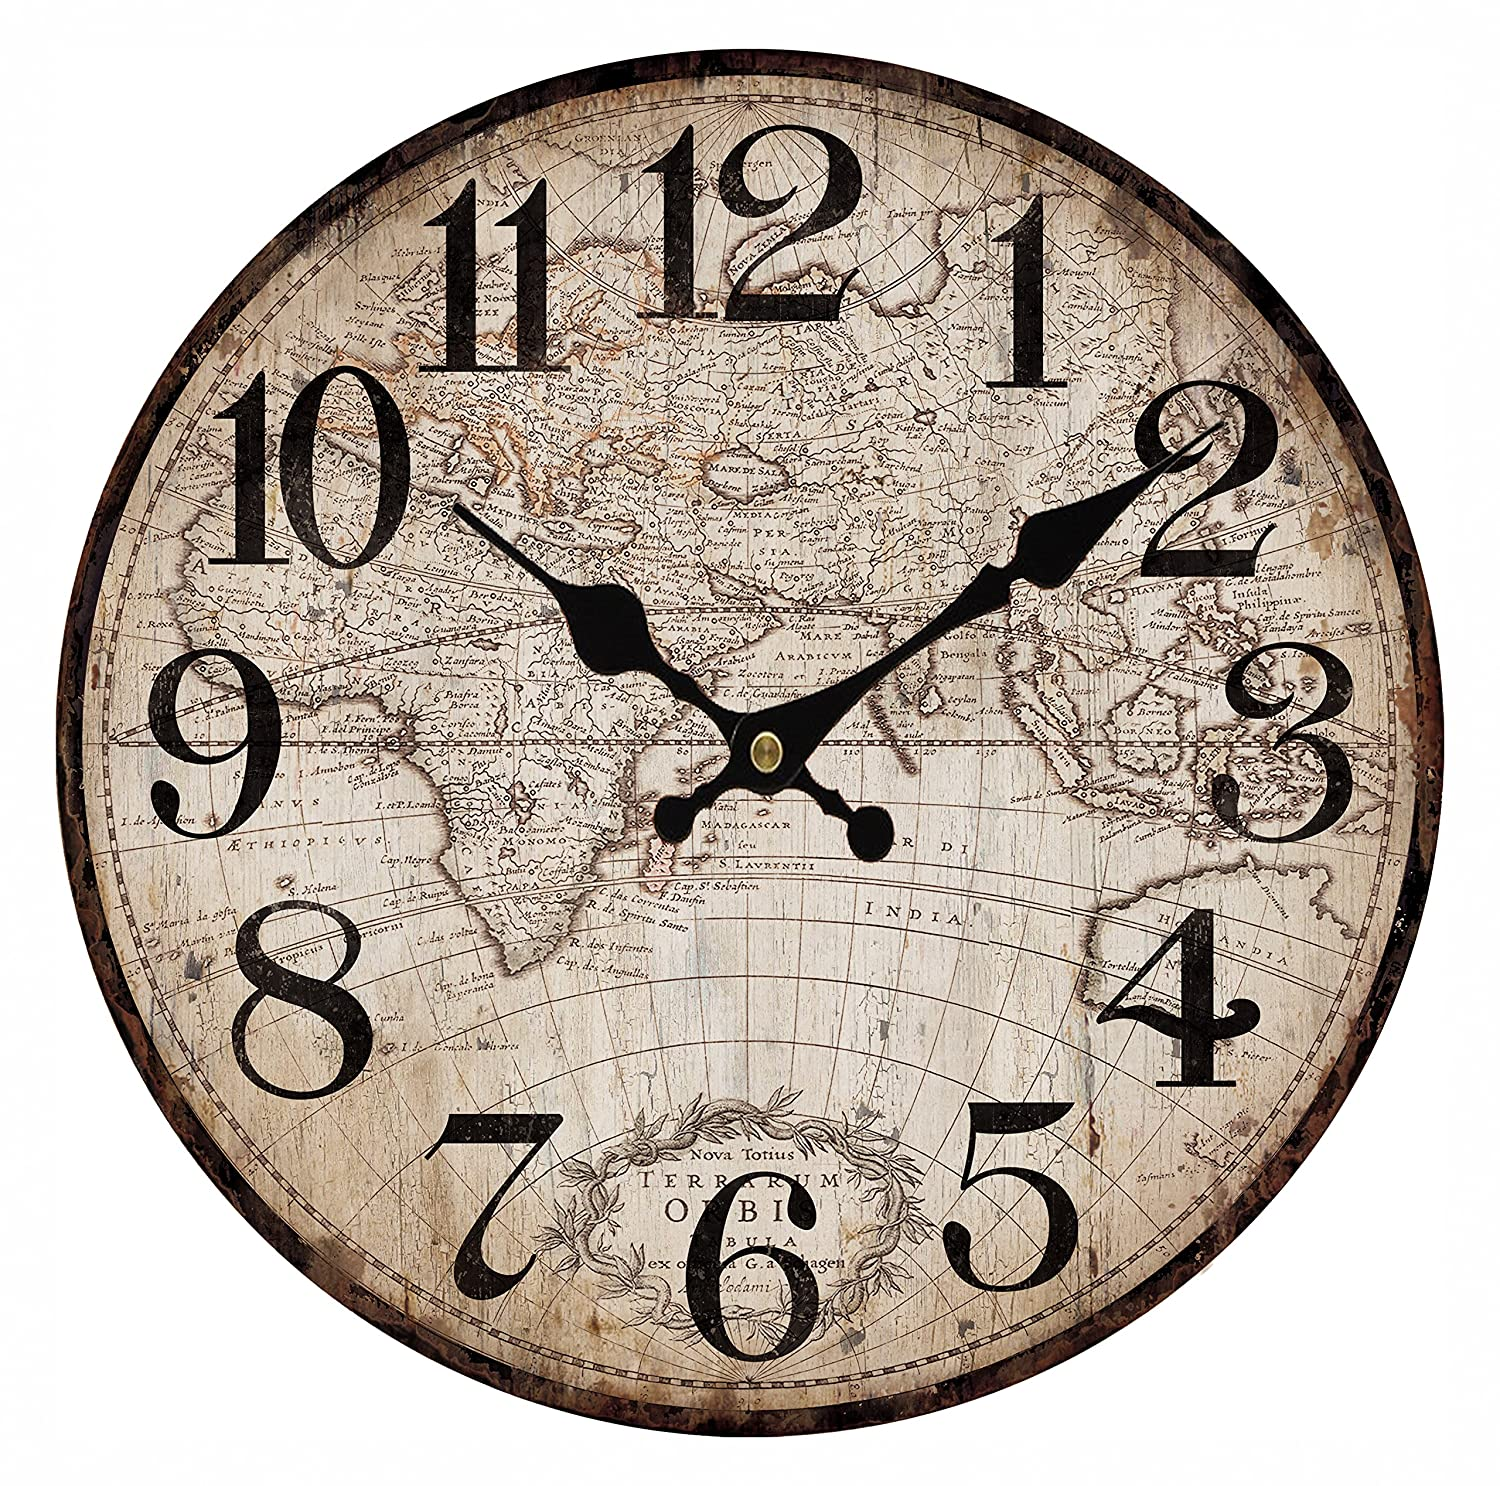 Upuptop 14 Faded Rustic Old Design Wall Decor Round Wood Clock with Vintage Antique Map Pattern